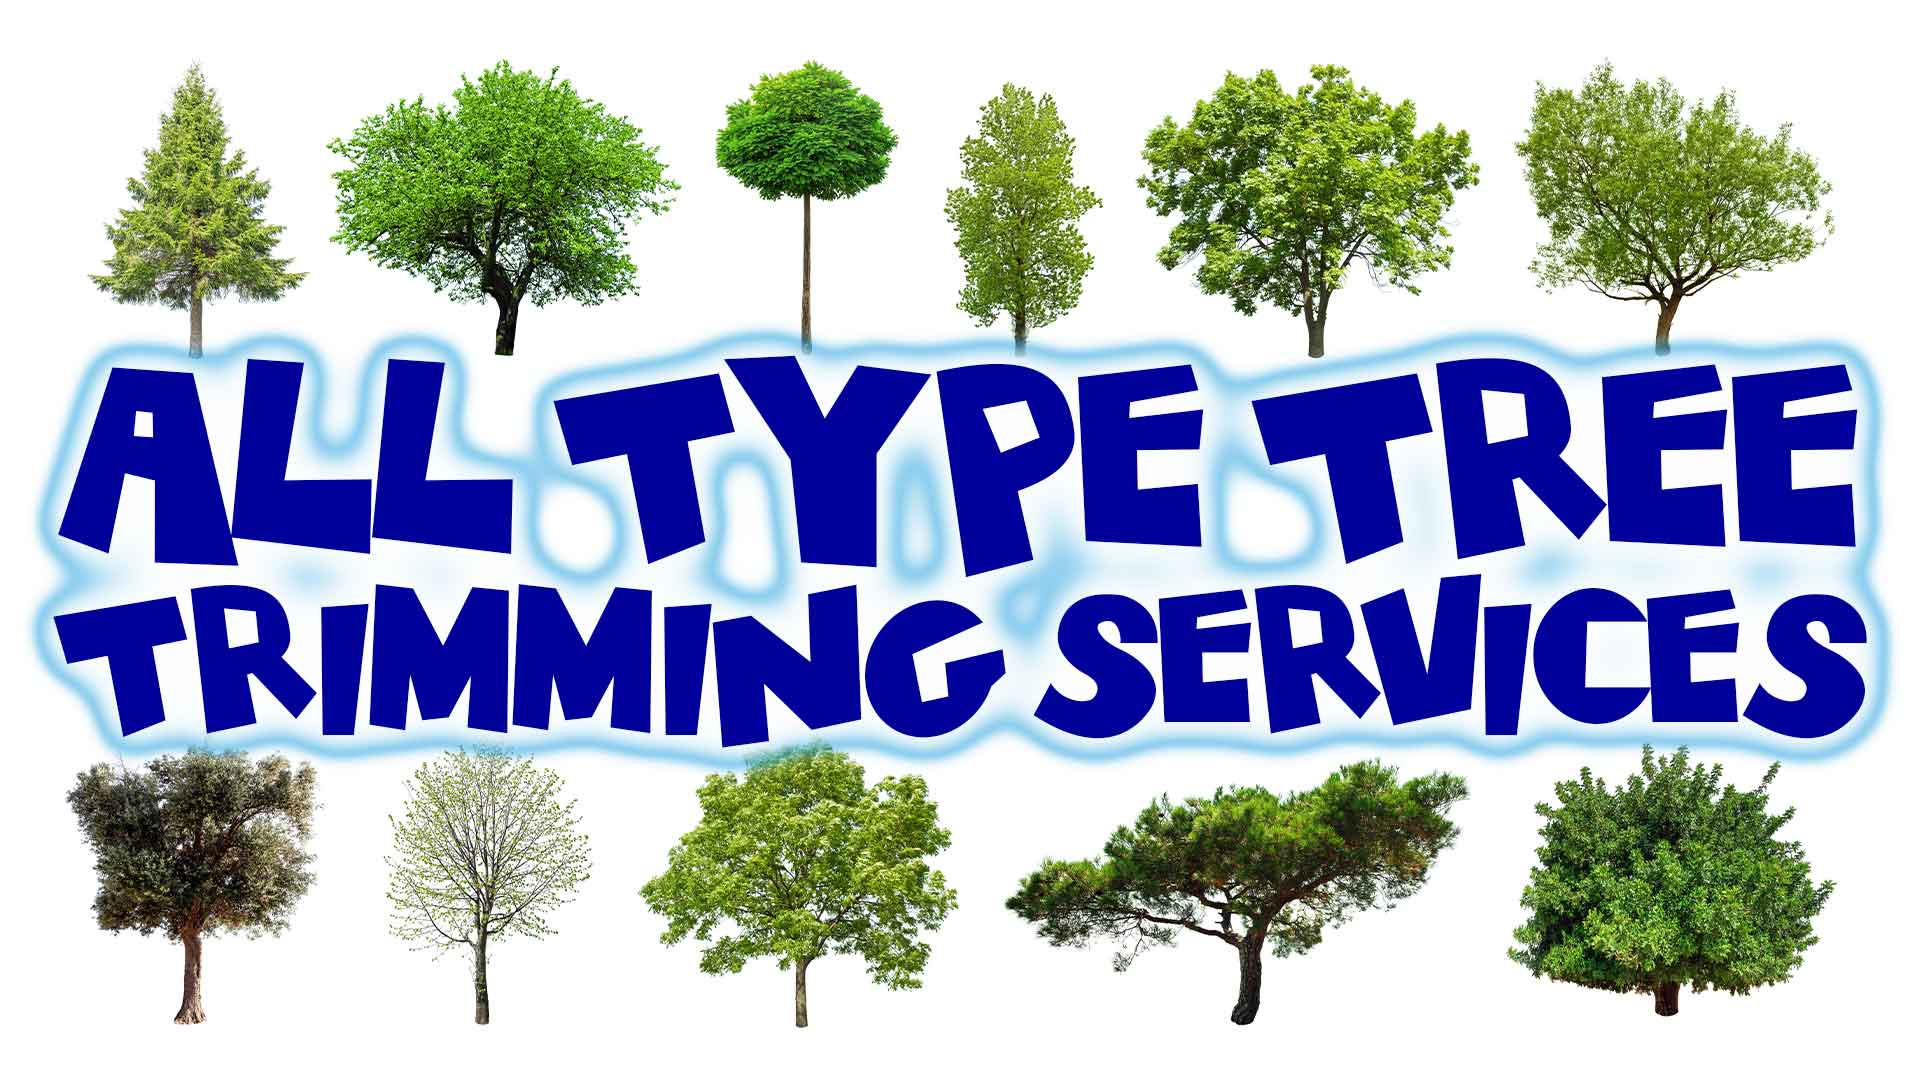 All-types-tree-trimming-services